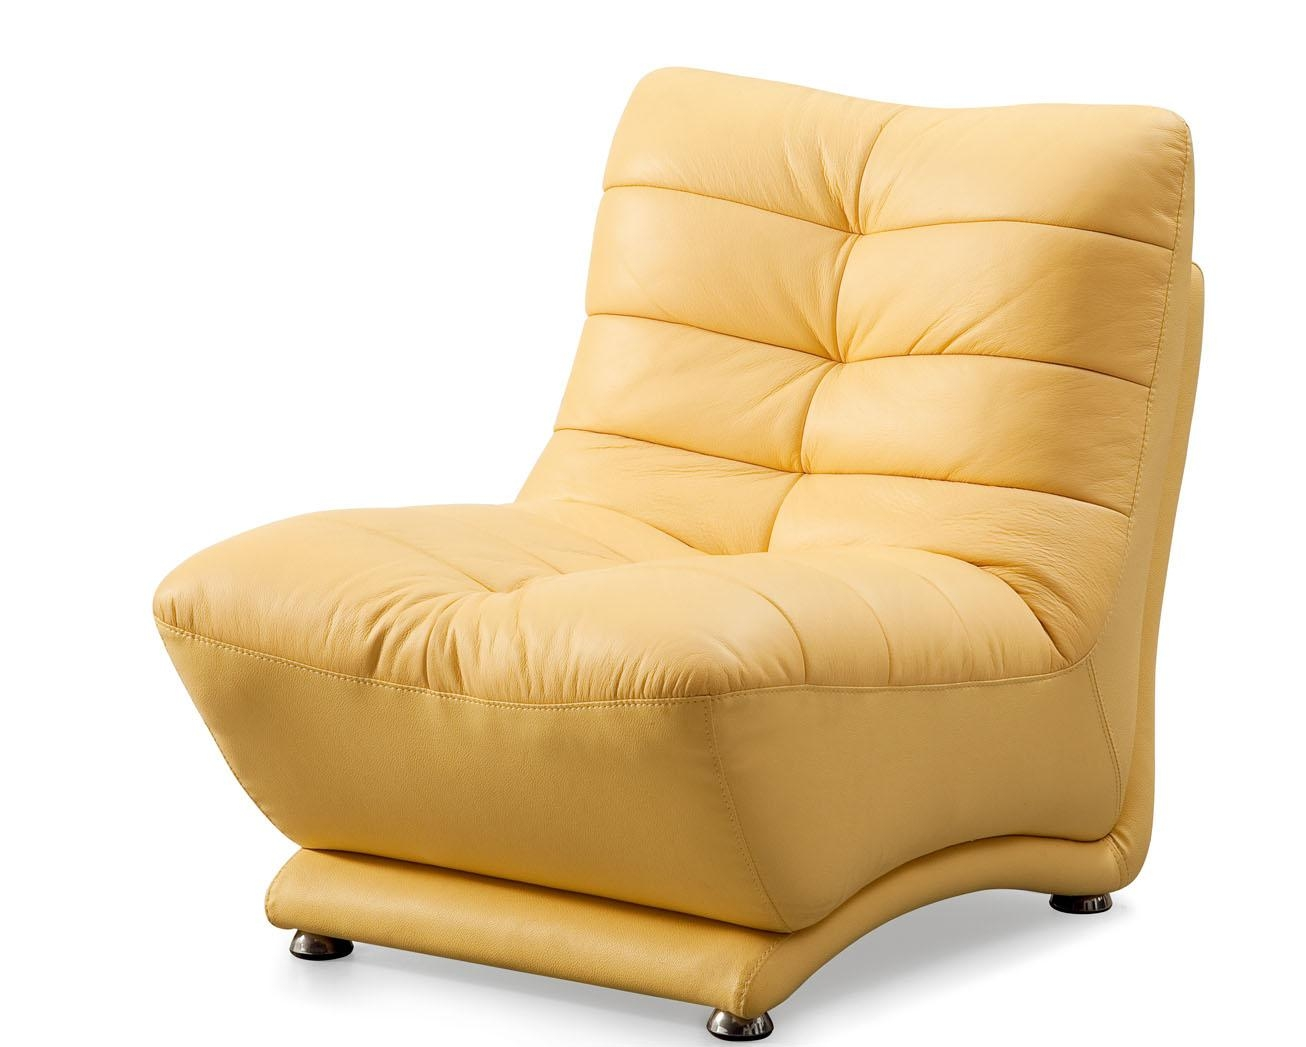 sofa with chair compare leather sofas 2019 latest chairs ideas